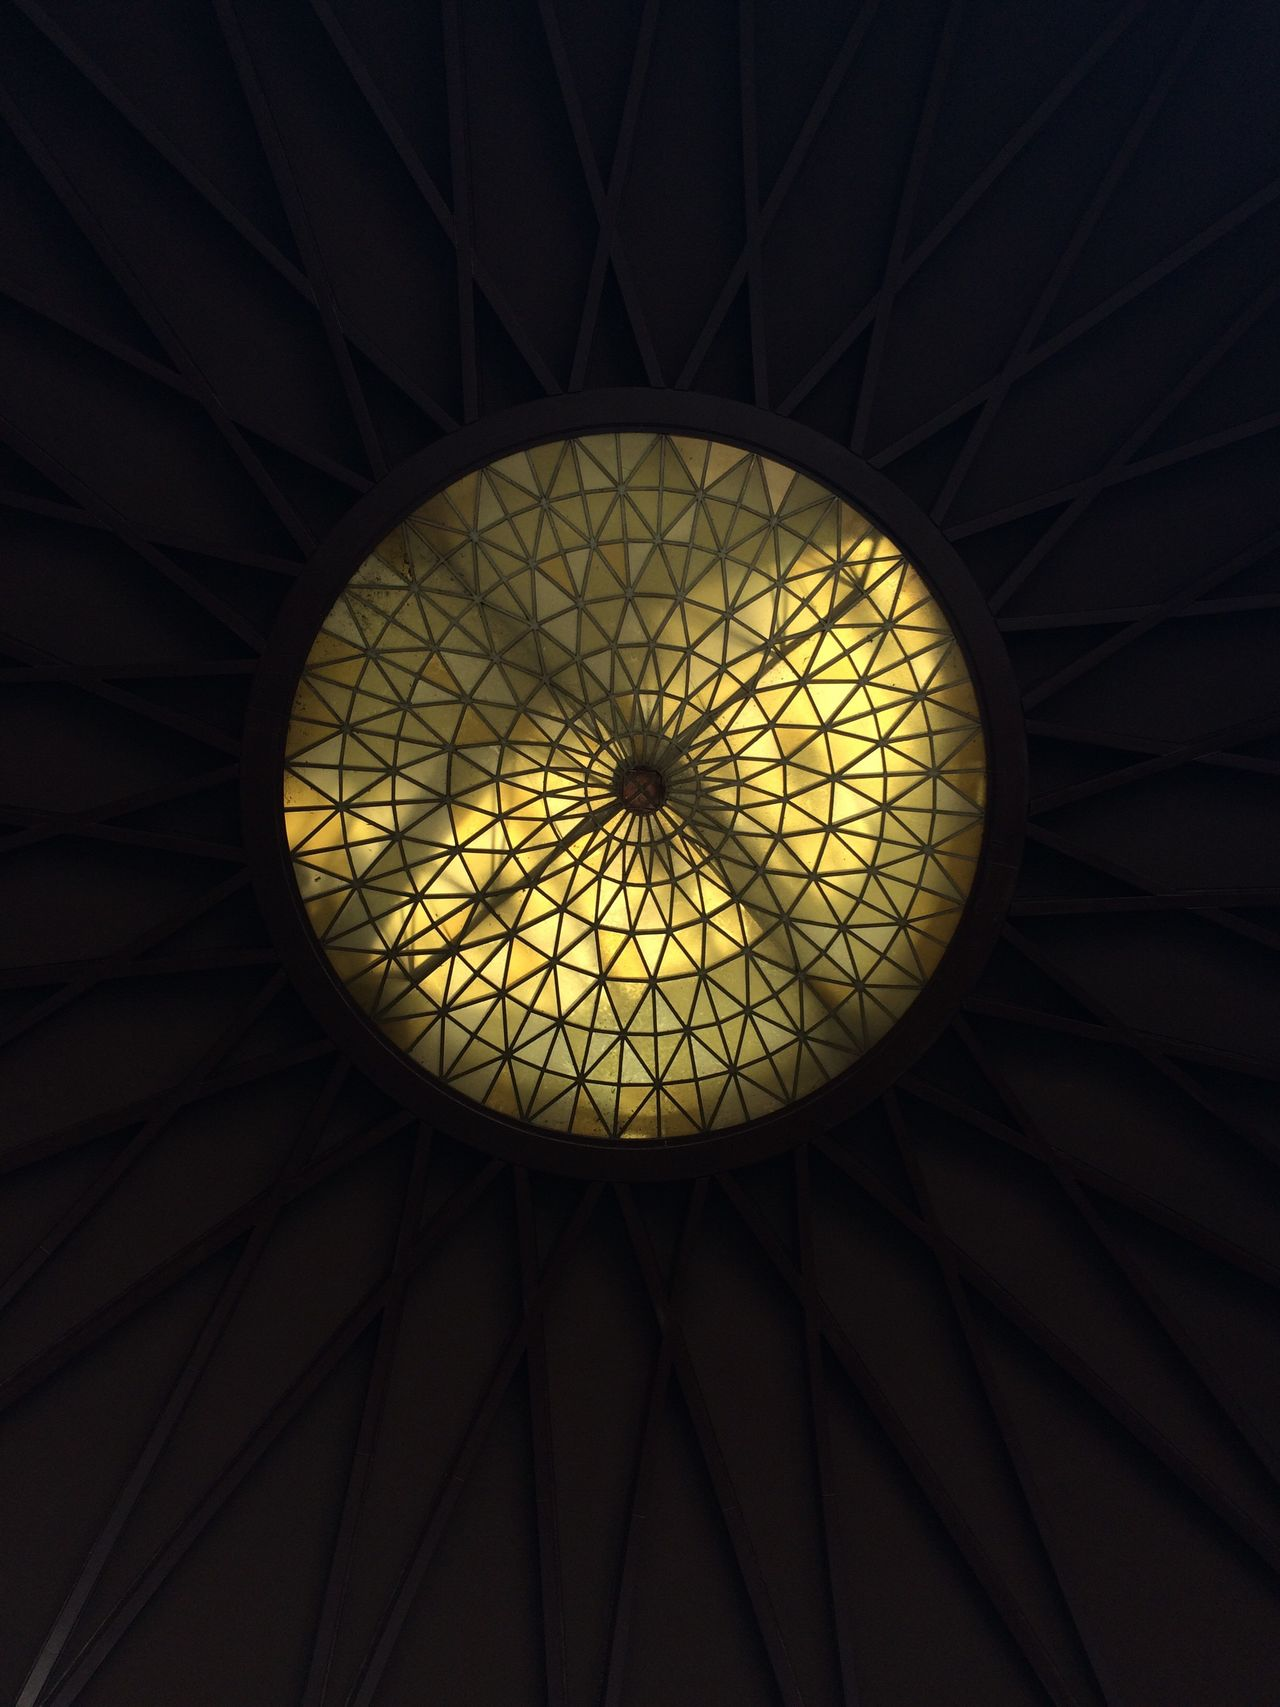 Low Angle View Pattern Ceiling Indoors  Directly Below No People Cupola Built Structure Architecture Day Moncloa Check This Out EyeEm Best Shots Taking Photos Hanging Out Enjoying Life Hello World Ceiling Ceiling Design Ceiling Lights Relief Dome Indoor